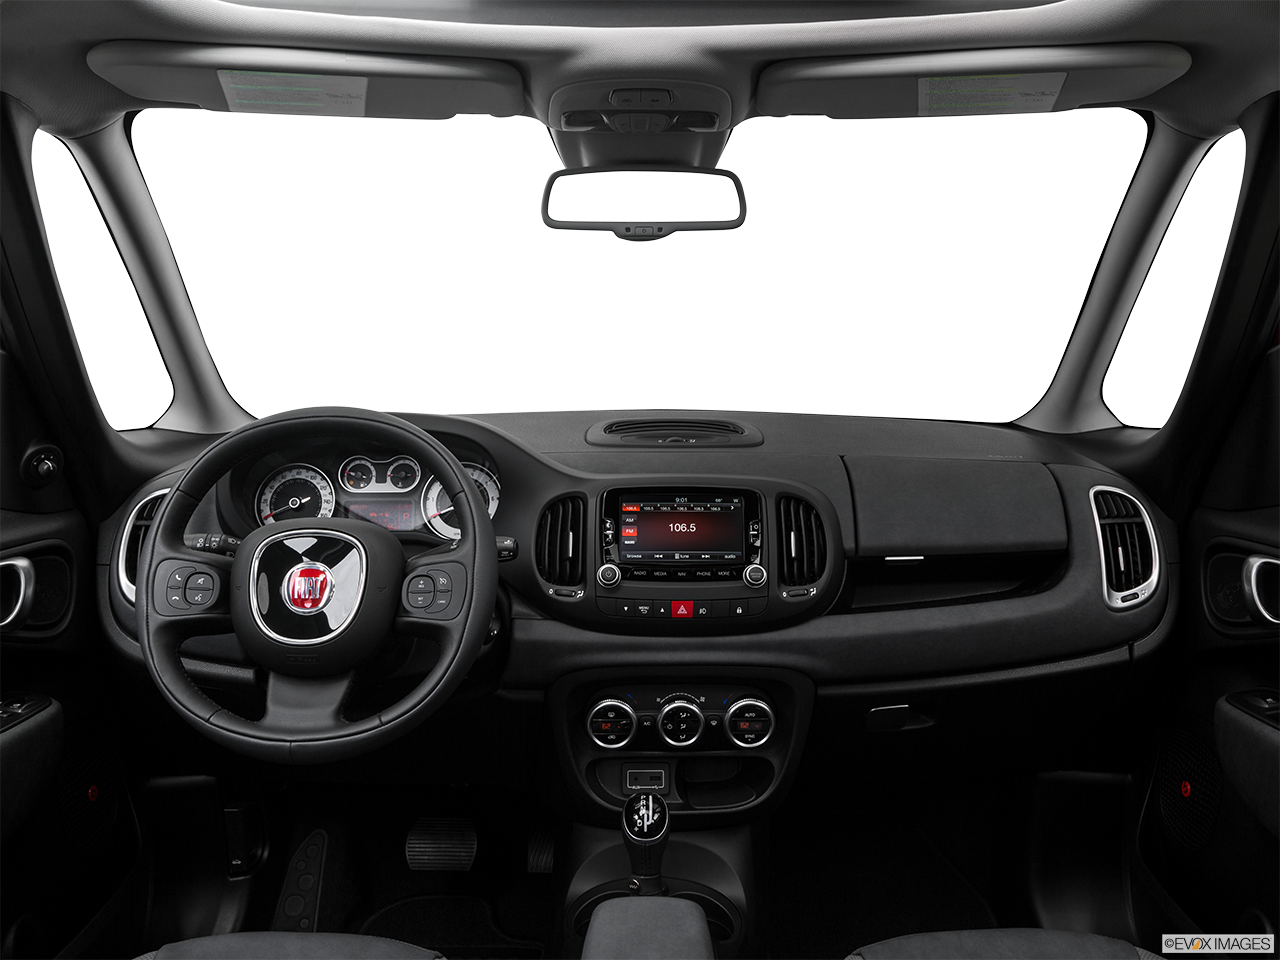 Interior View Of 2016 Fiat 500L in West Palm Beach